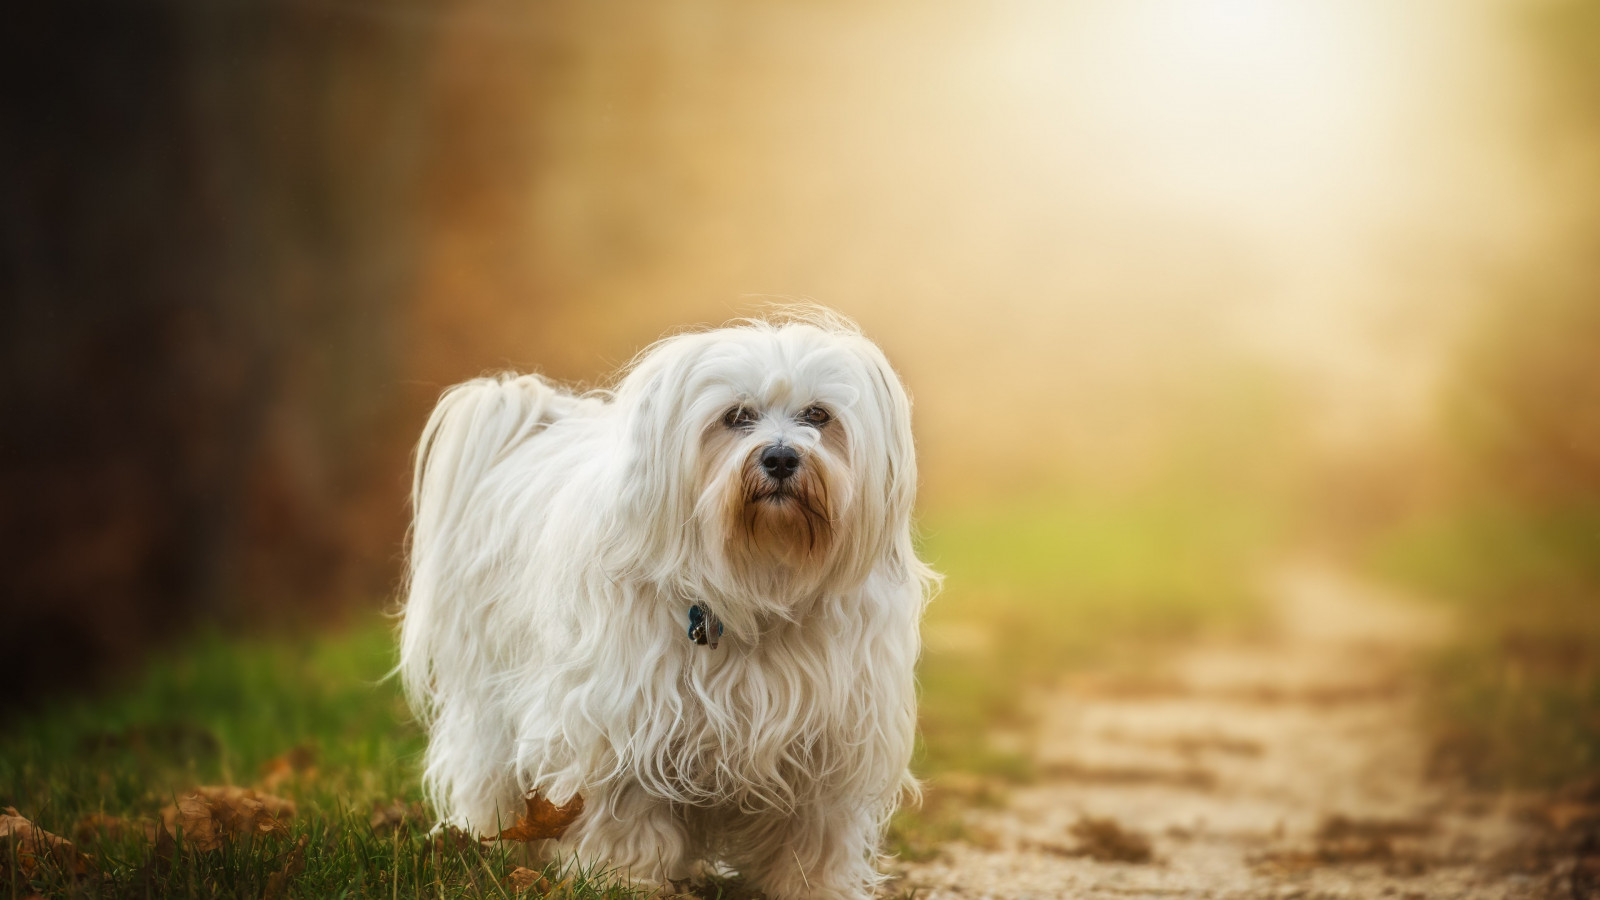 Havanese dog breed wallpaper 1600x900